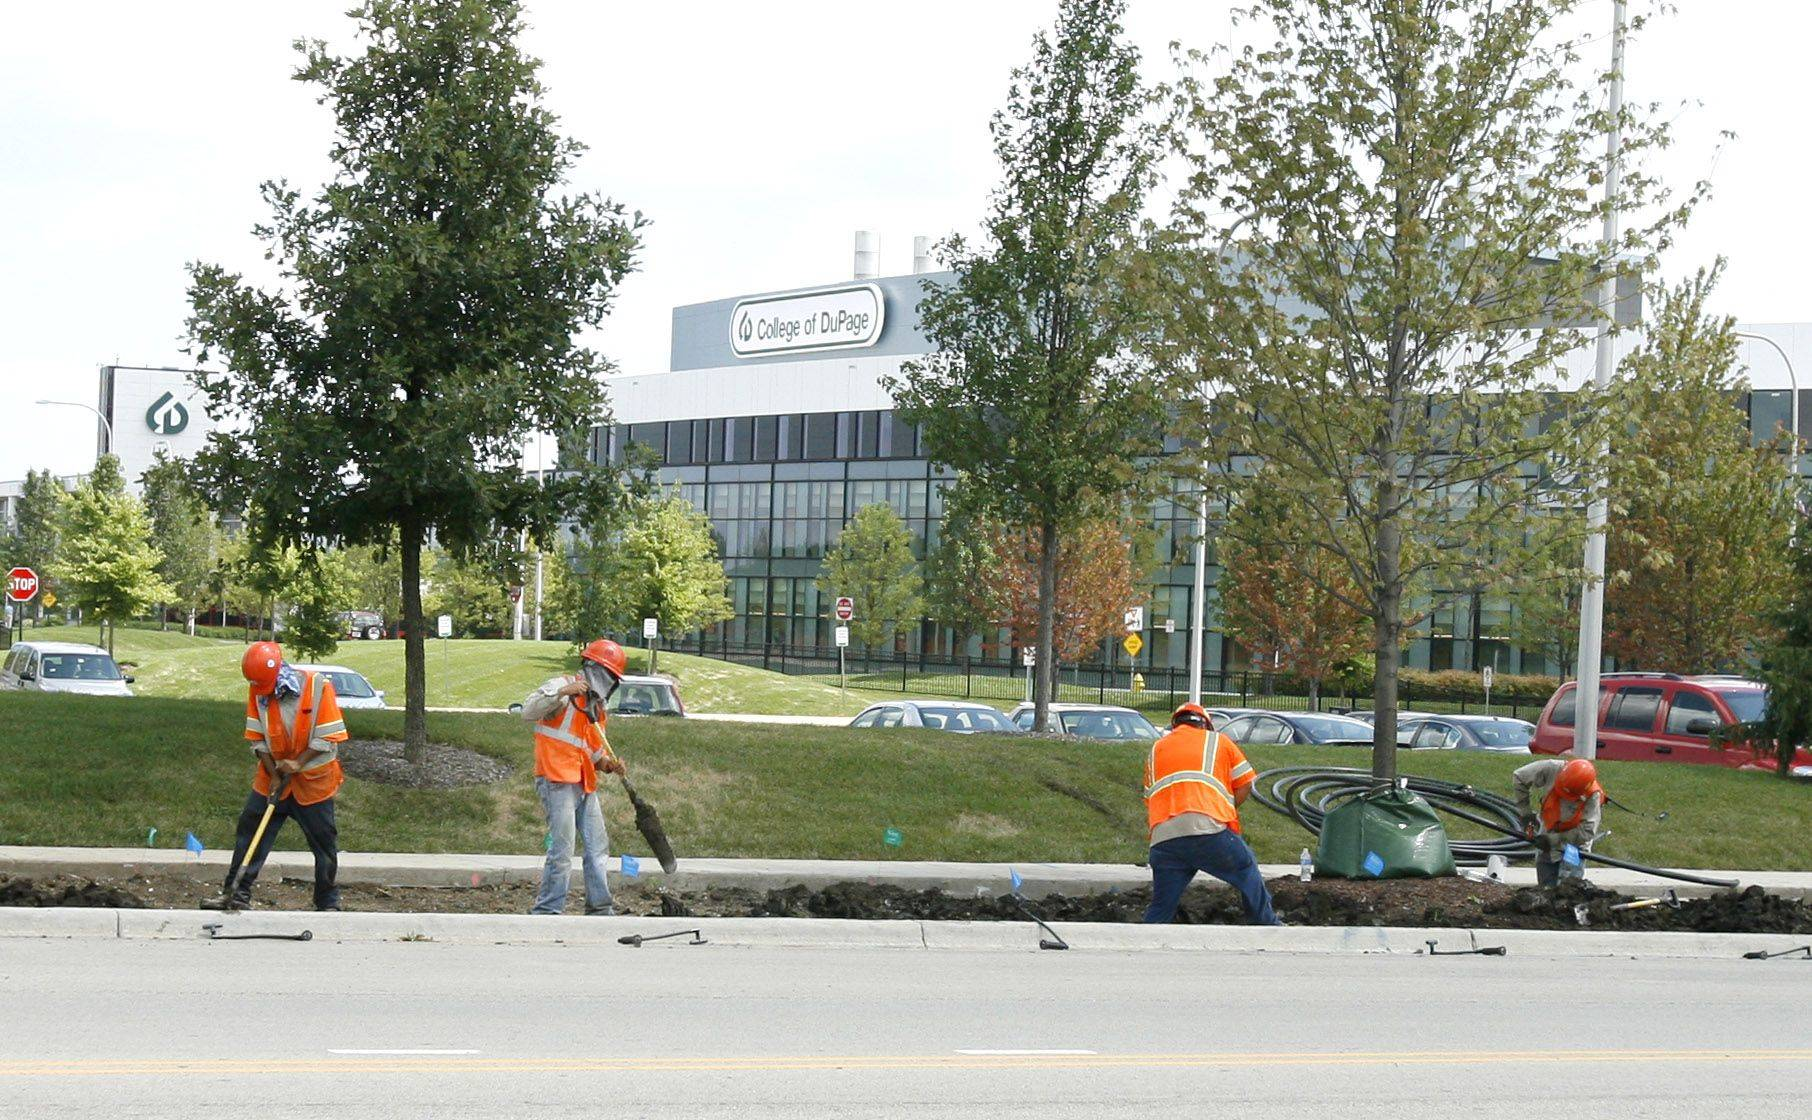 Much of the College of DuPage's 273-acre campus has been under construction since it began a major building program in 2007. But the village of Glen Ellyn has issued stop work orders and citations for some of the construction projects that don't comply with local codes.